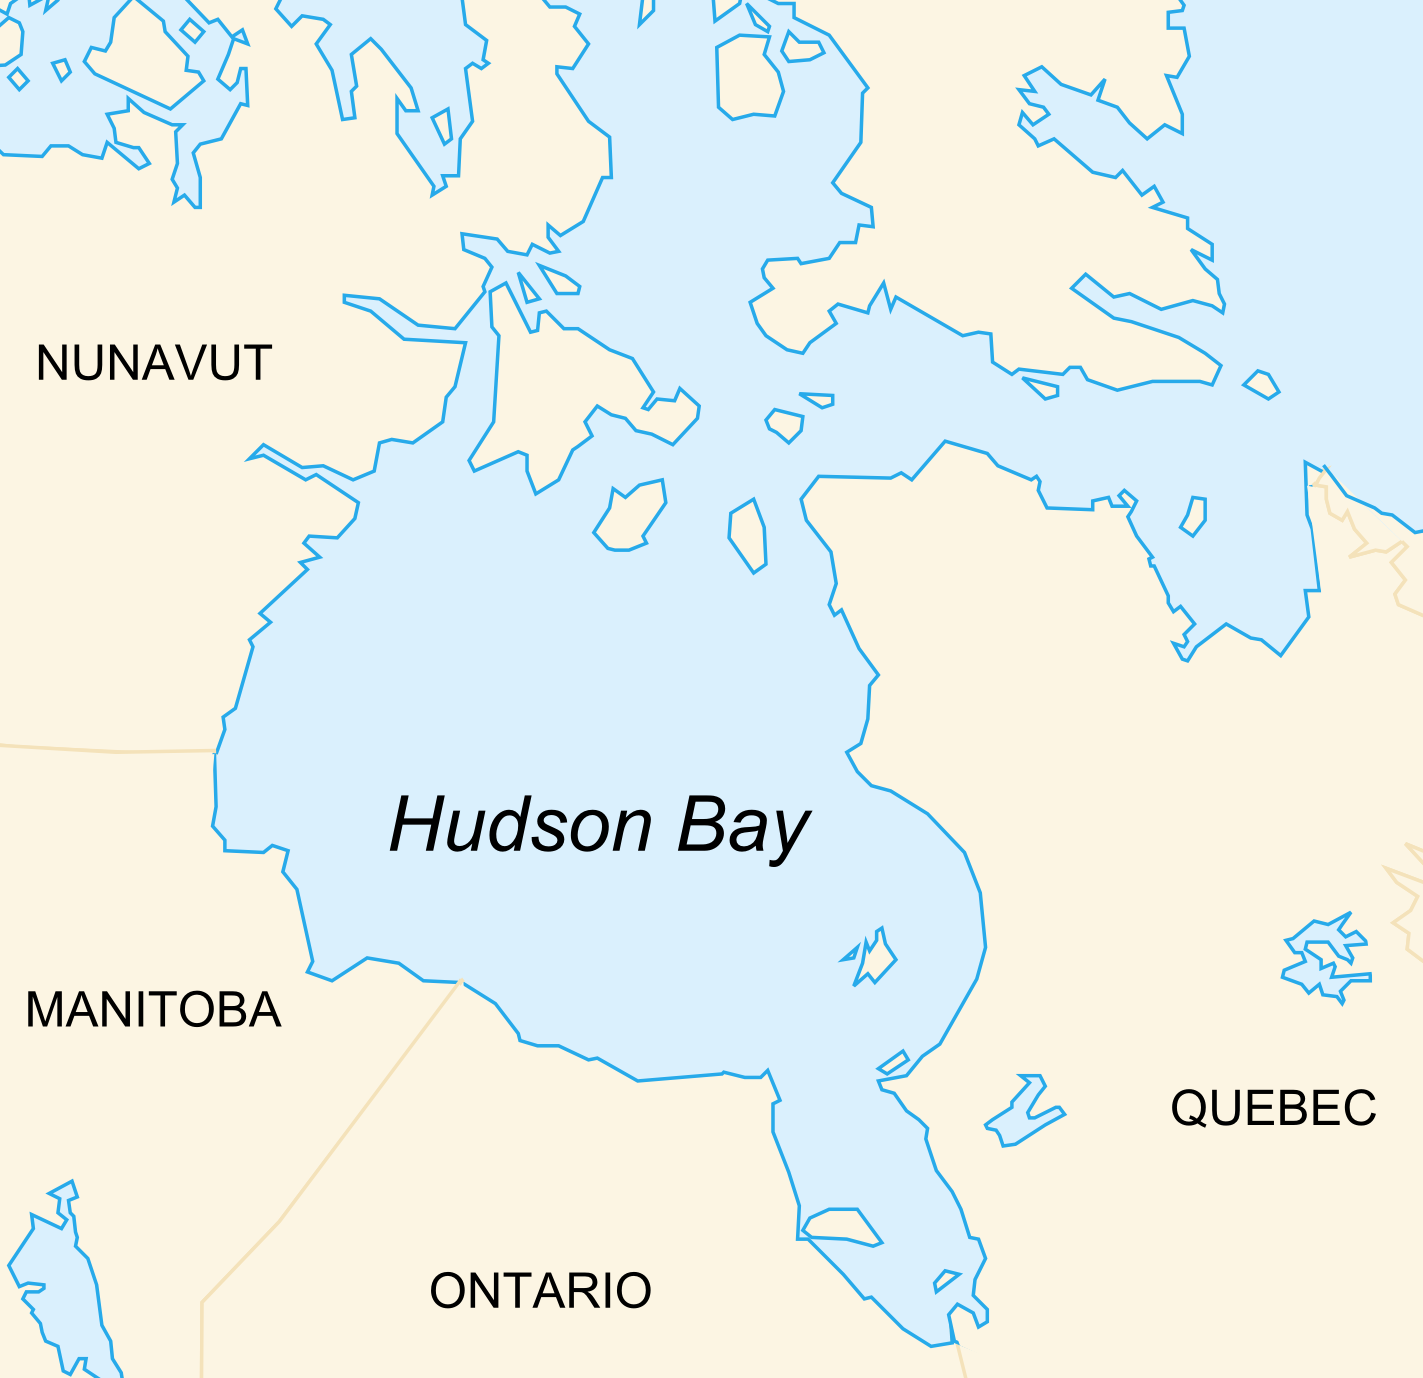 map of canada cities and provinces with File Hudson Bay Large on Division besides Liechtenstein Maps in addition Moosetravel further Oman Road Maps furthermore Map Of Alberta Province Pictures.